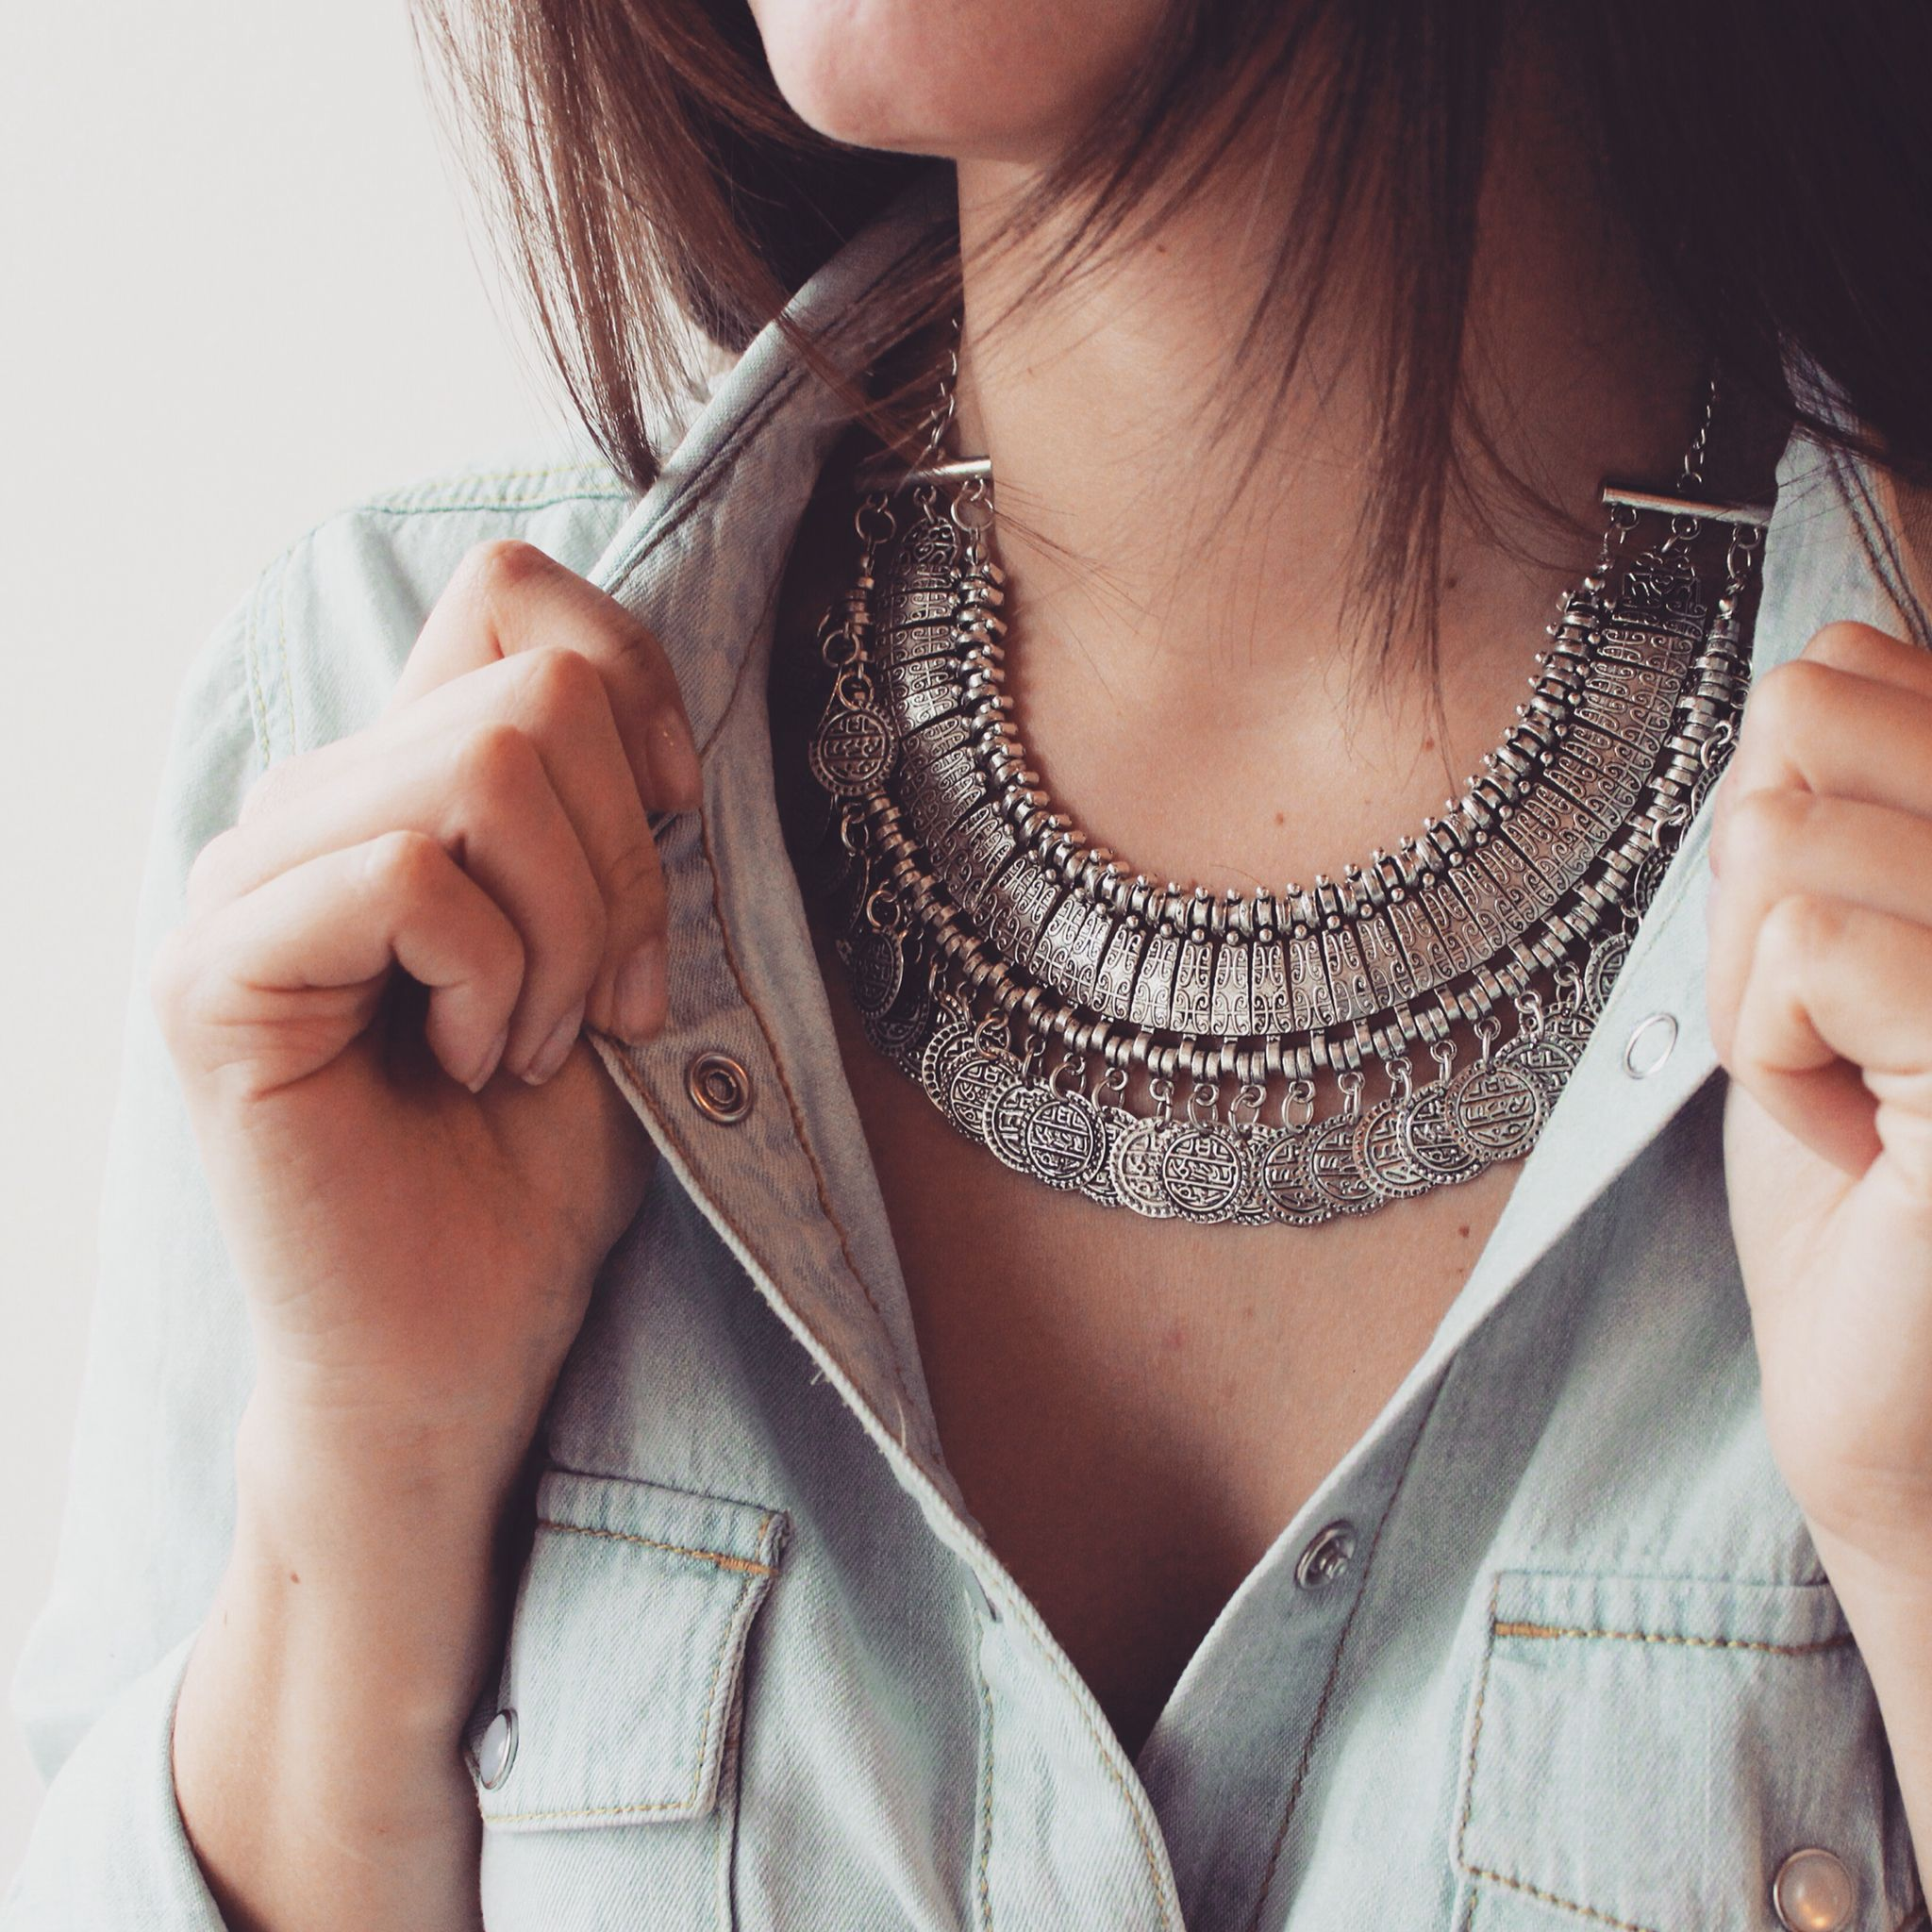 Silver coin necklace from @HugoSophia